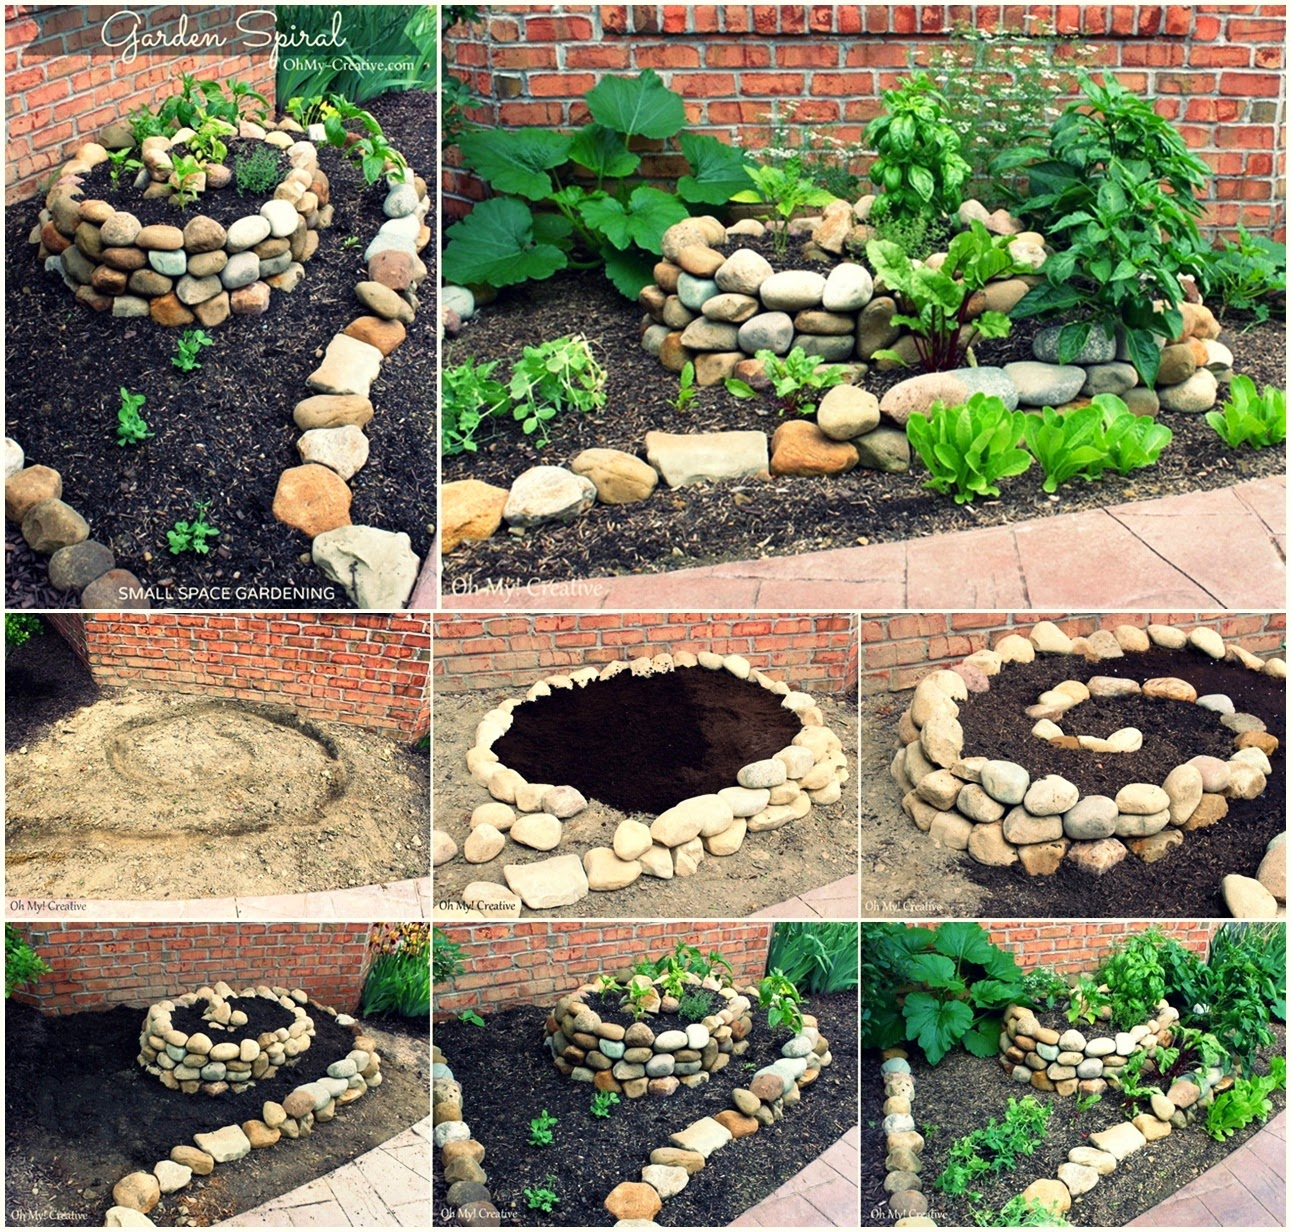 Diy create a small vegetable garden using a garden spiral diy craft projects - Garden ideas diy ...